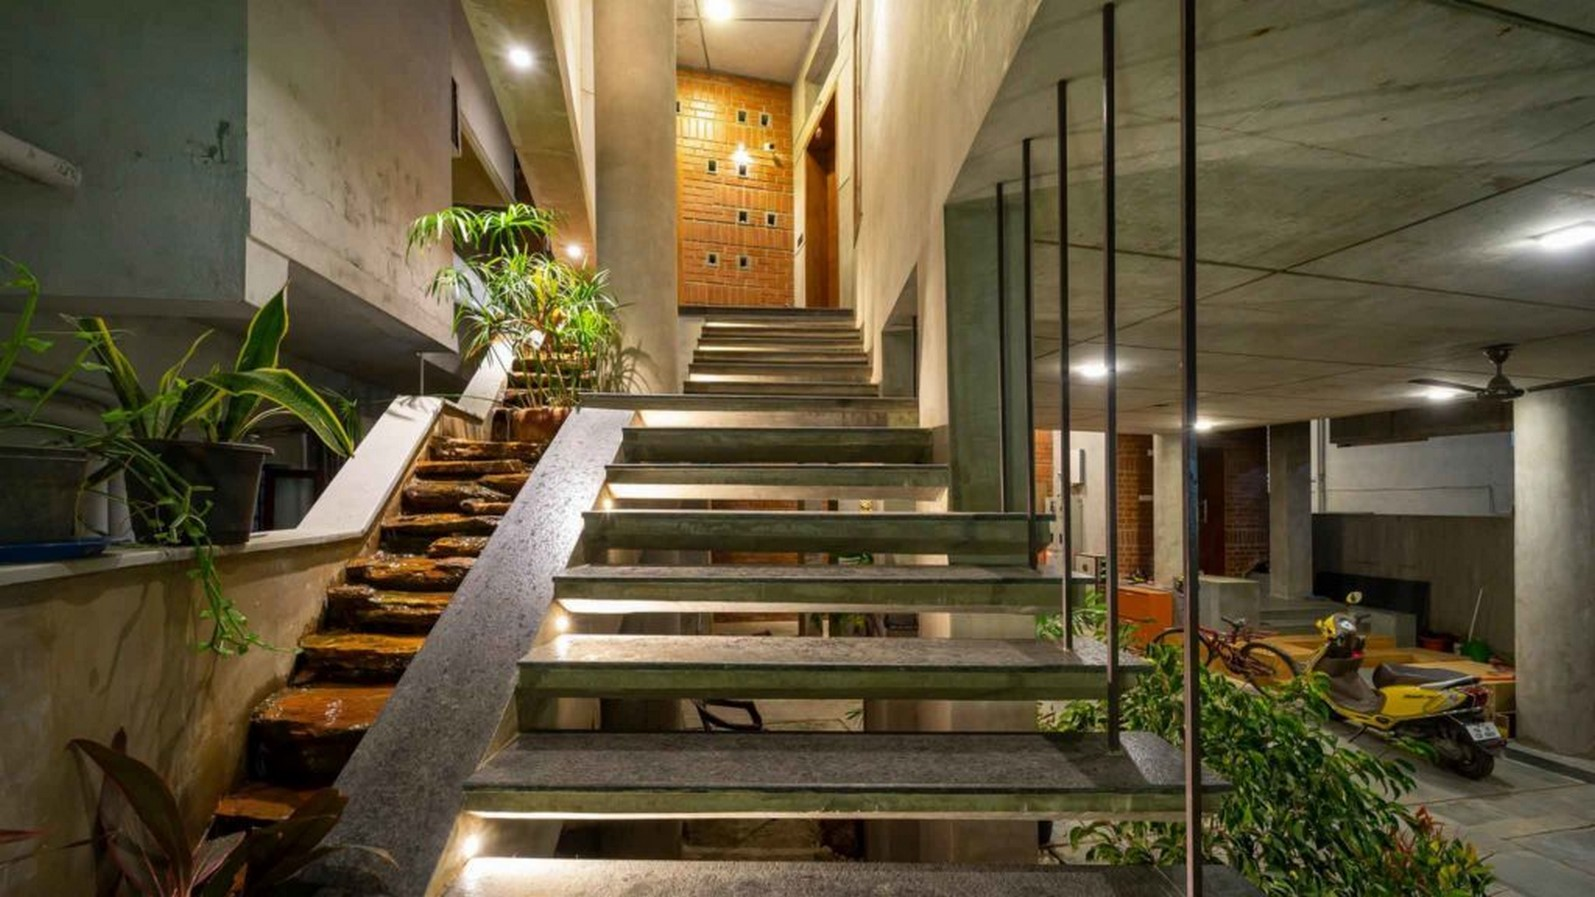 25 Concrete Staircases for Small Houses - sheet16